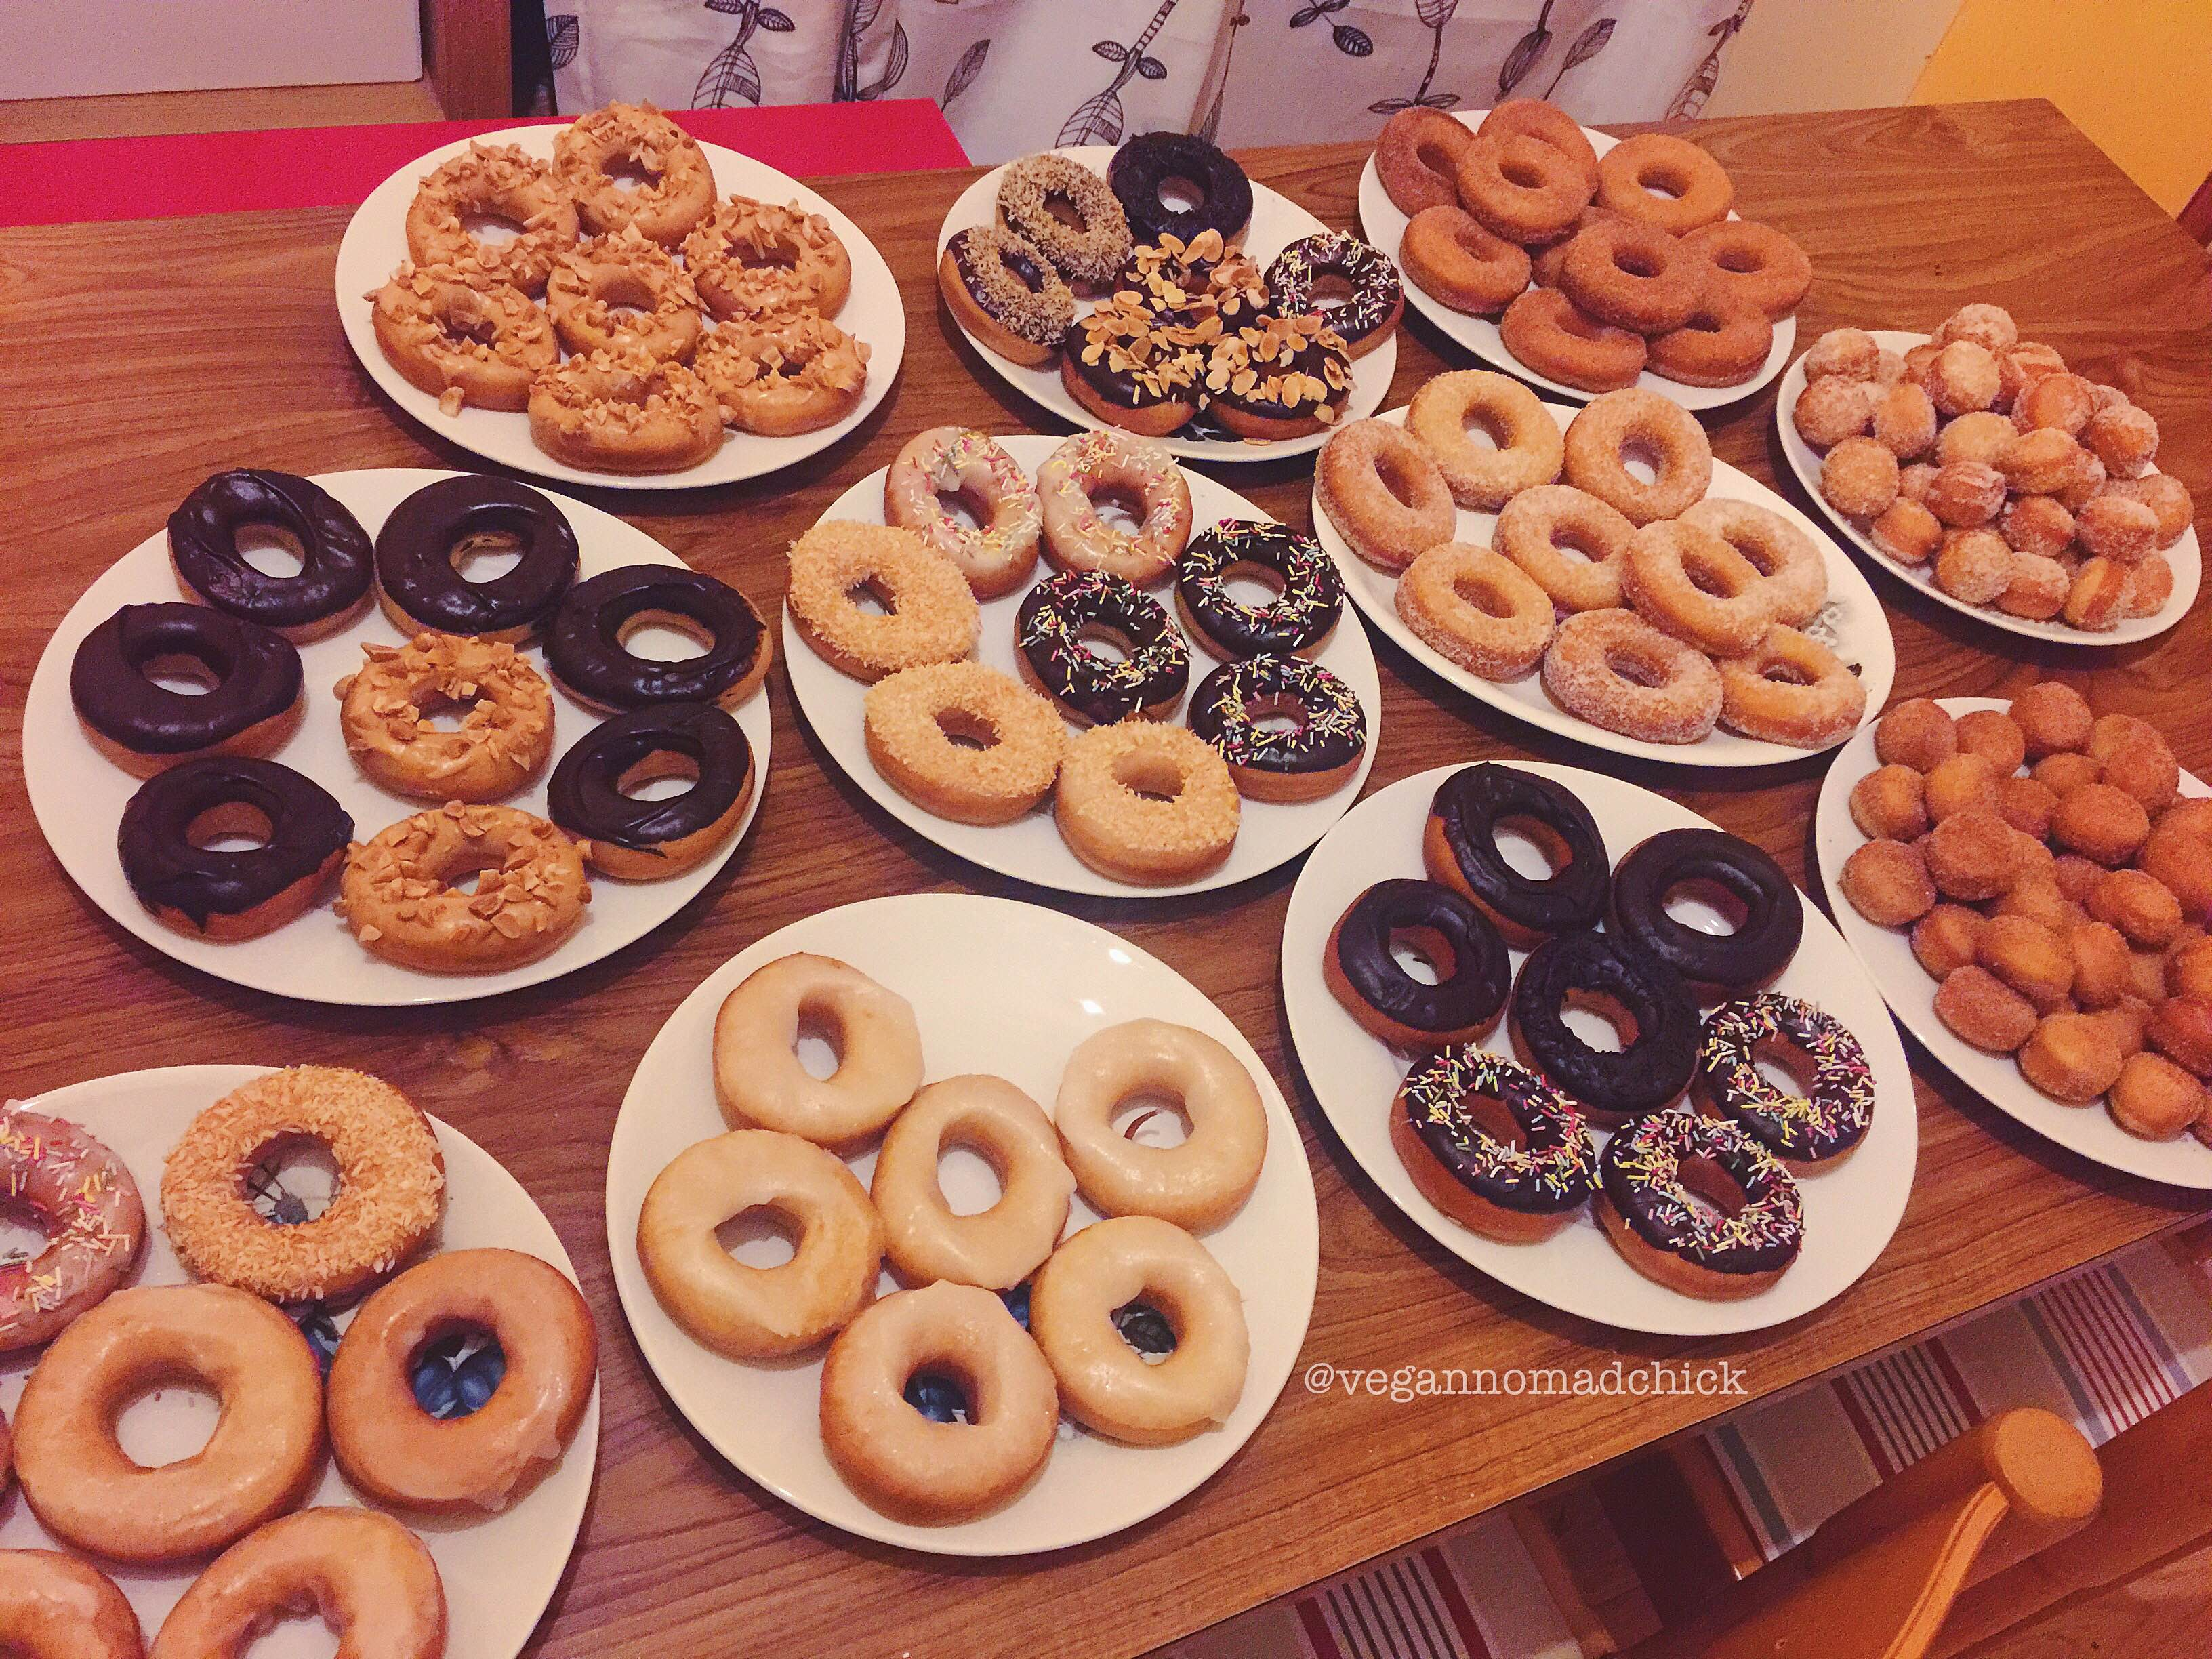 Donuts are life